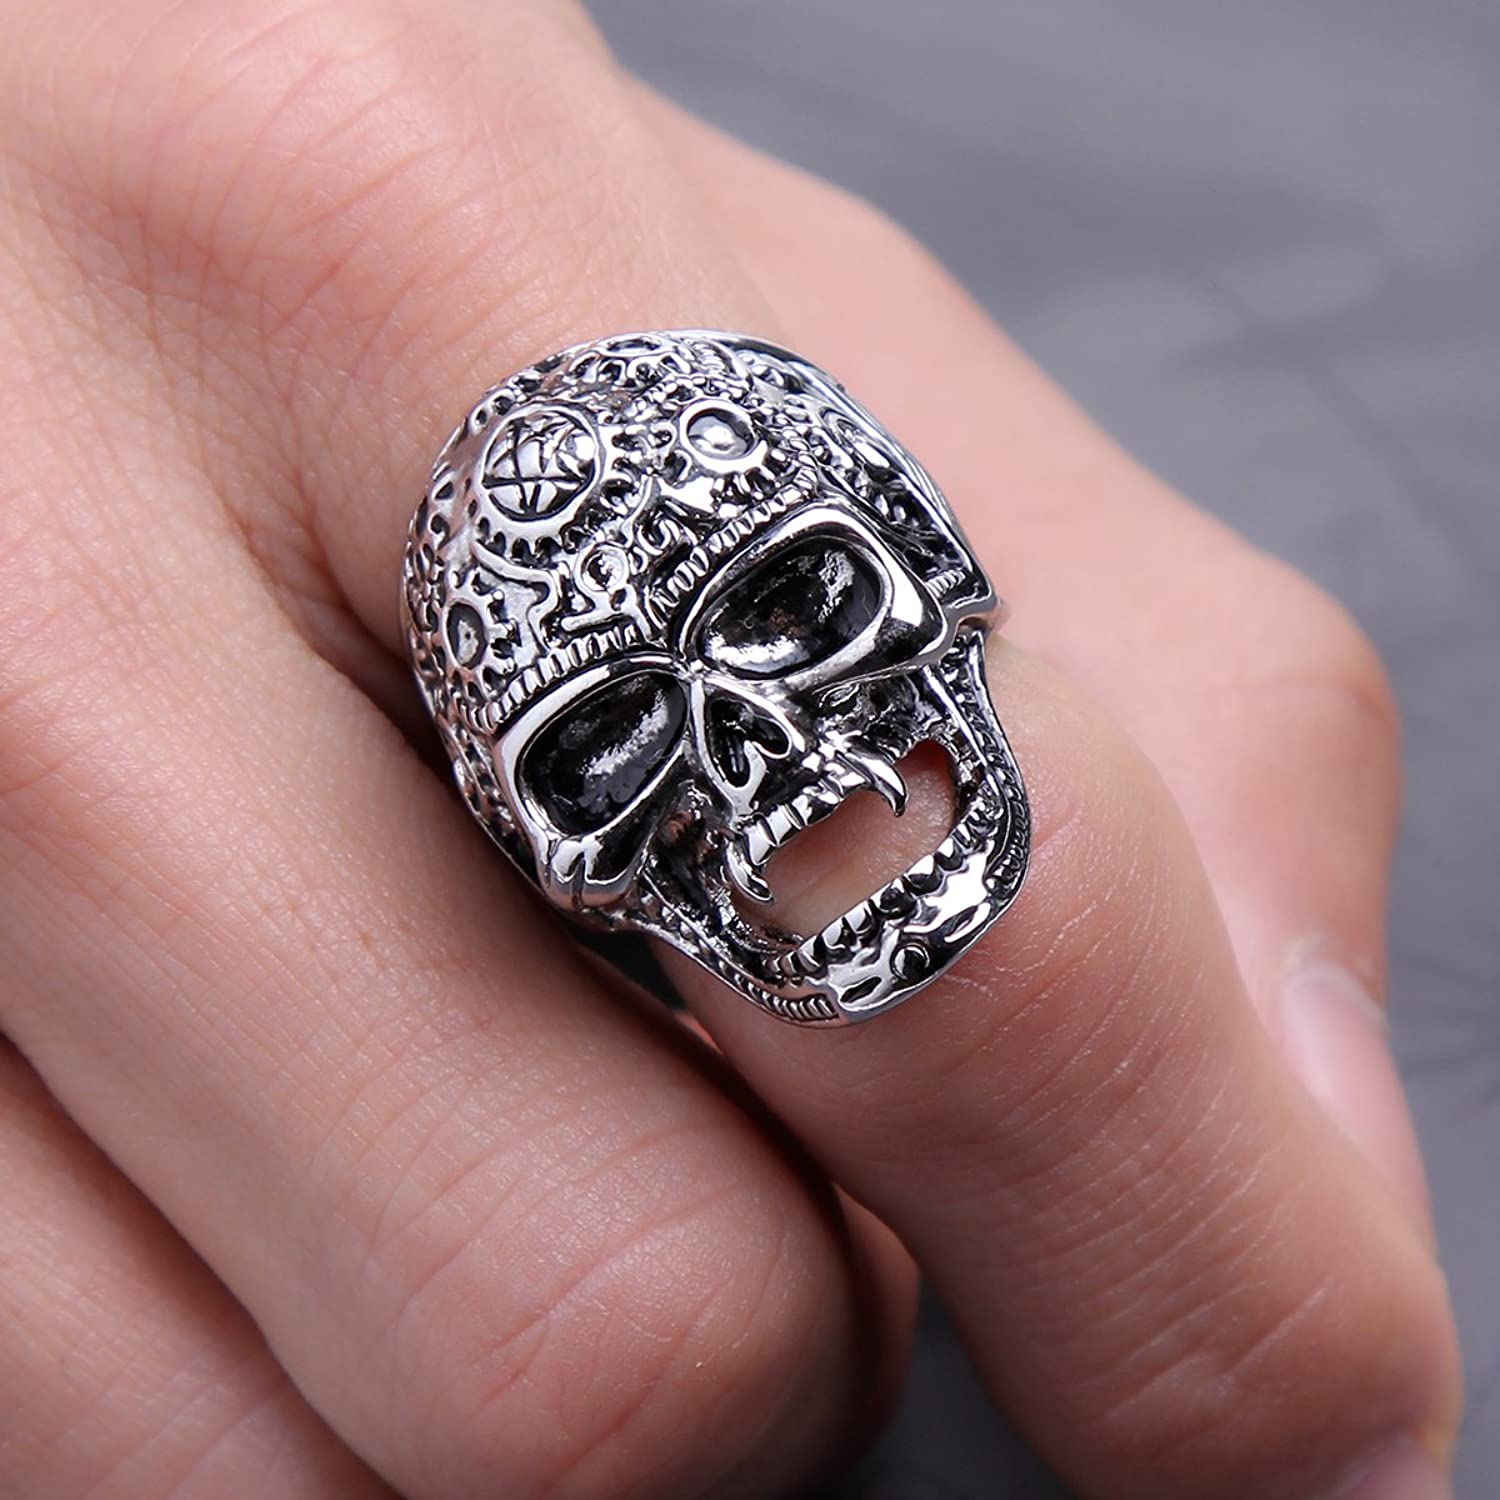 EVBEA Mens Skull Band EVBEA Big Cool Biker Skull Face Motorbycle ...